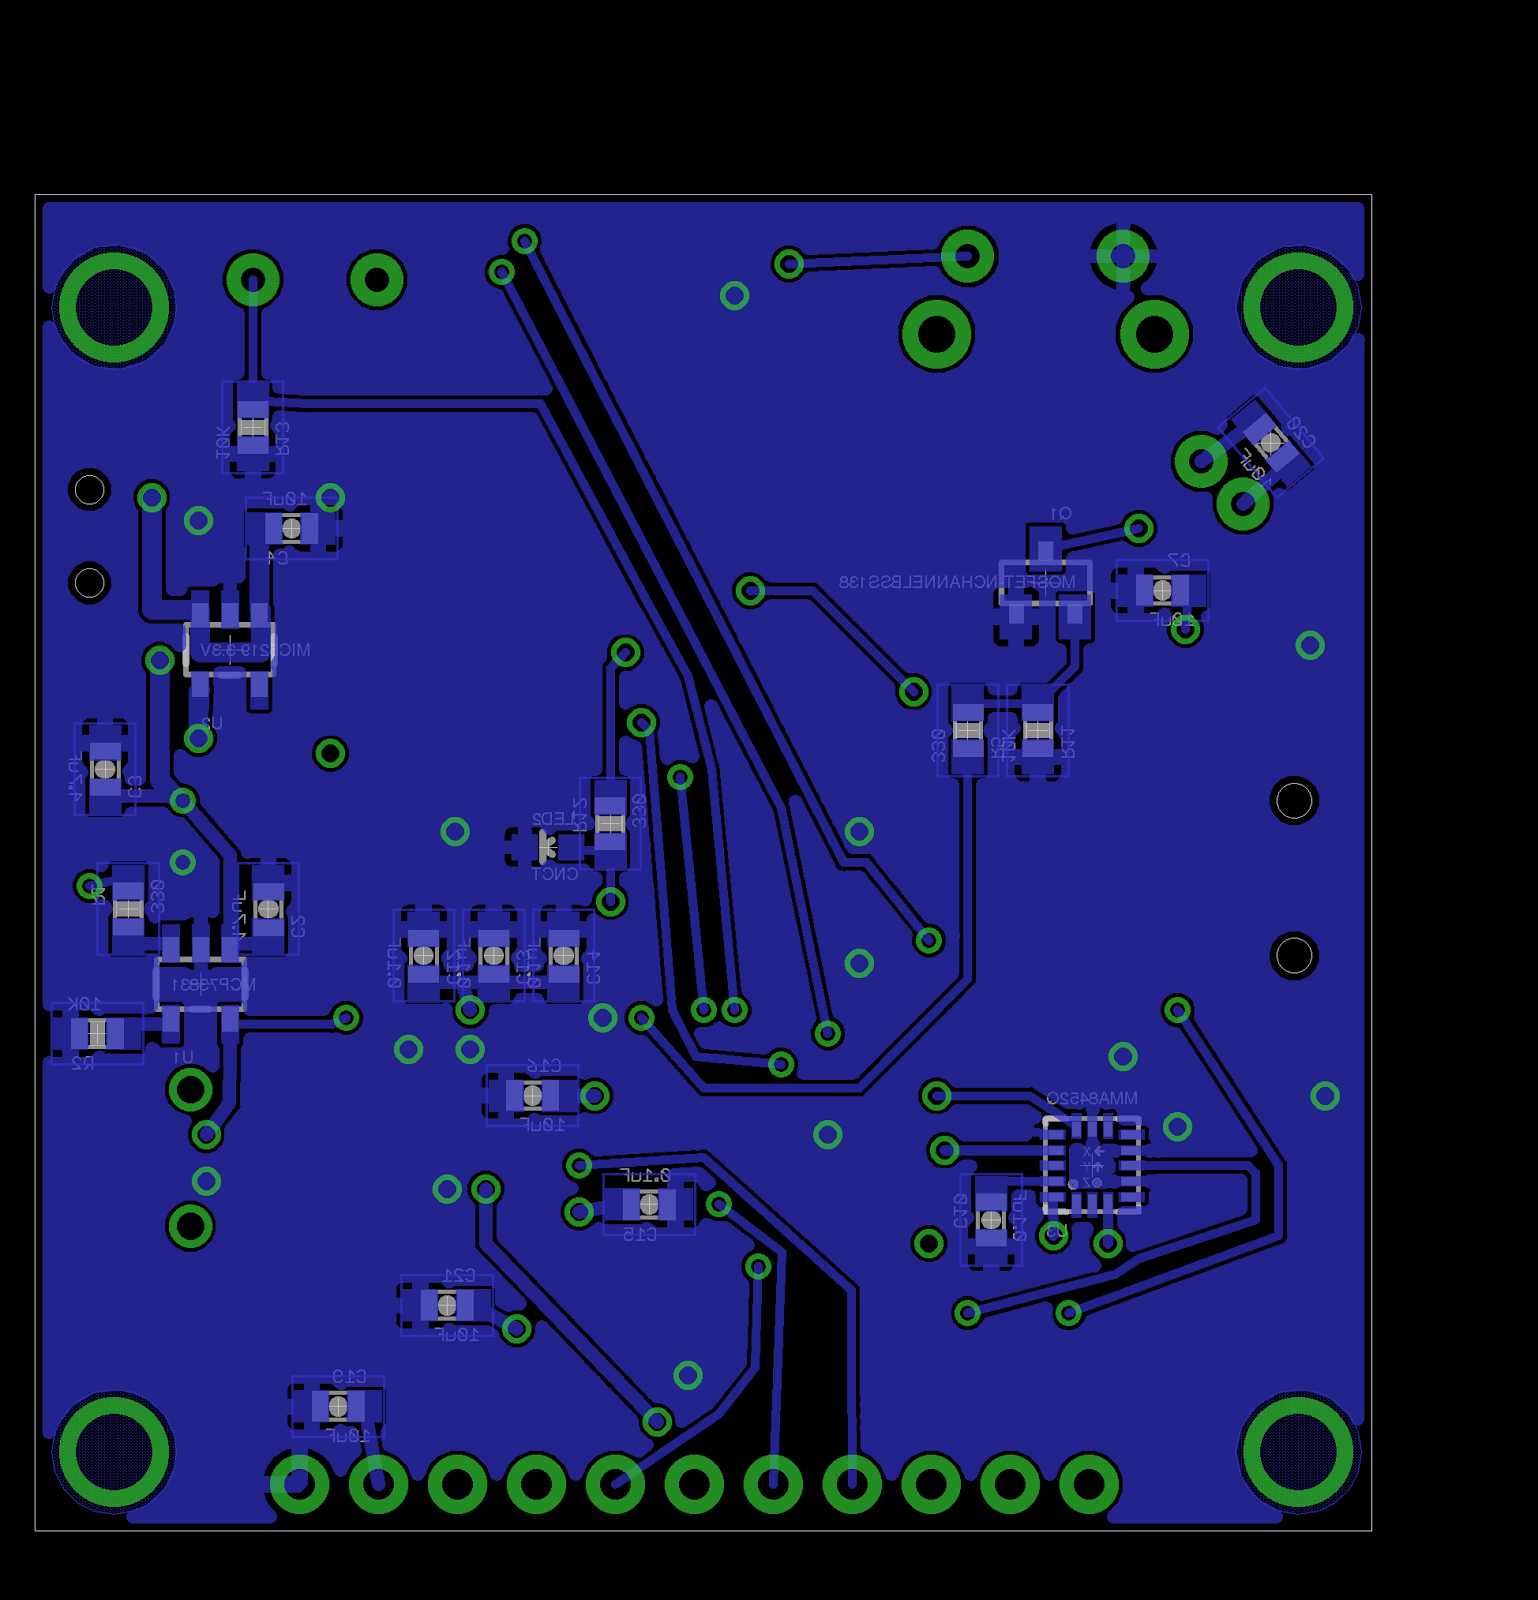 Pcb Design Keith Elliotts Personal Site Circuit Board Articles Rush Blog High Current Designing And Here Are The Fabbed Boards I Ordered Them From Fusion Since They Cheapest Option Could Find Provided A Quantity Of Ten In